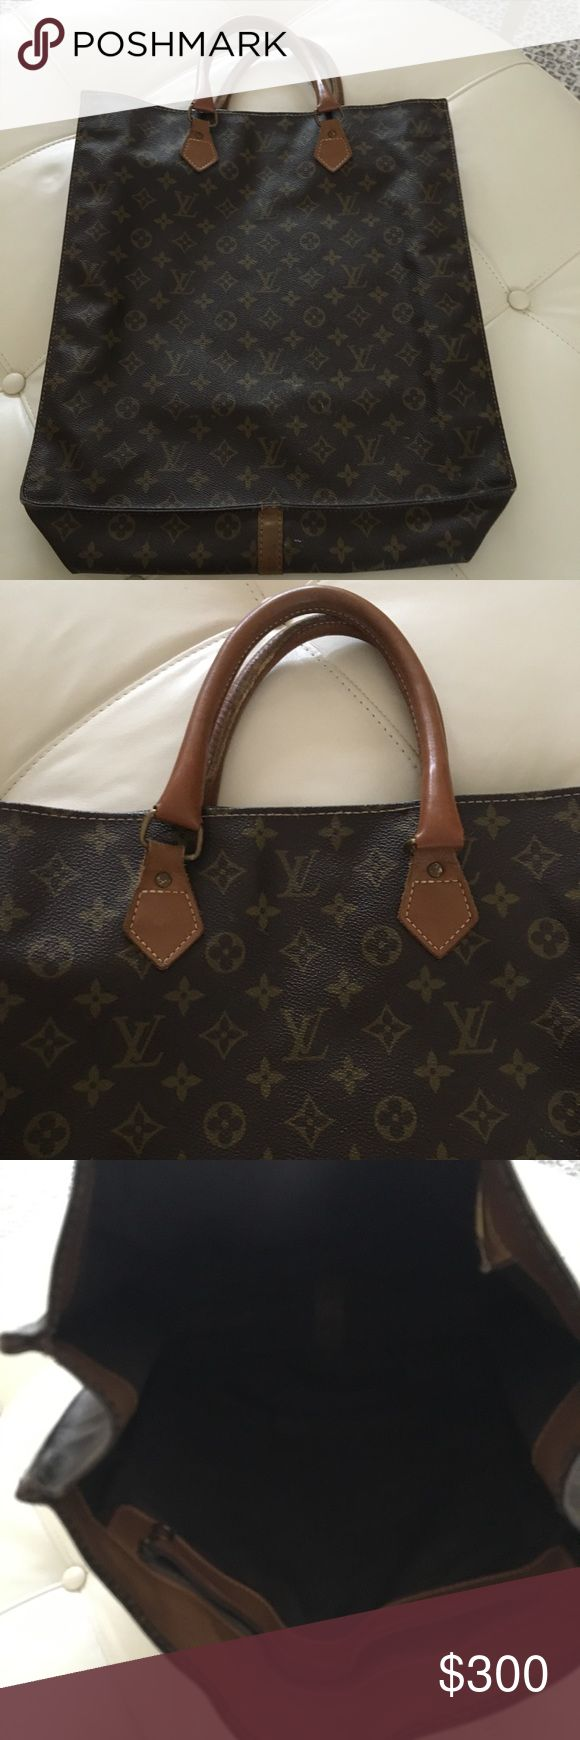 Louis Vuitton Vintage tote Louis Vuitton Vintage tote. Bought in the 1980's from the Louis Vuitton store. Very good condition! 14 x 13.5 inches with 4 inch handle drop.  This is HALF price of what the same vintage bag is selling online (see LXR) Louis Vuitton Bags Totes